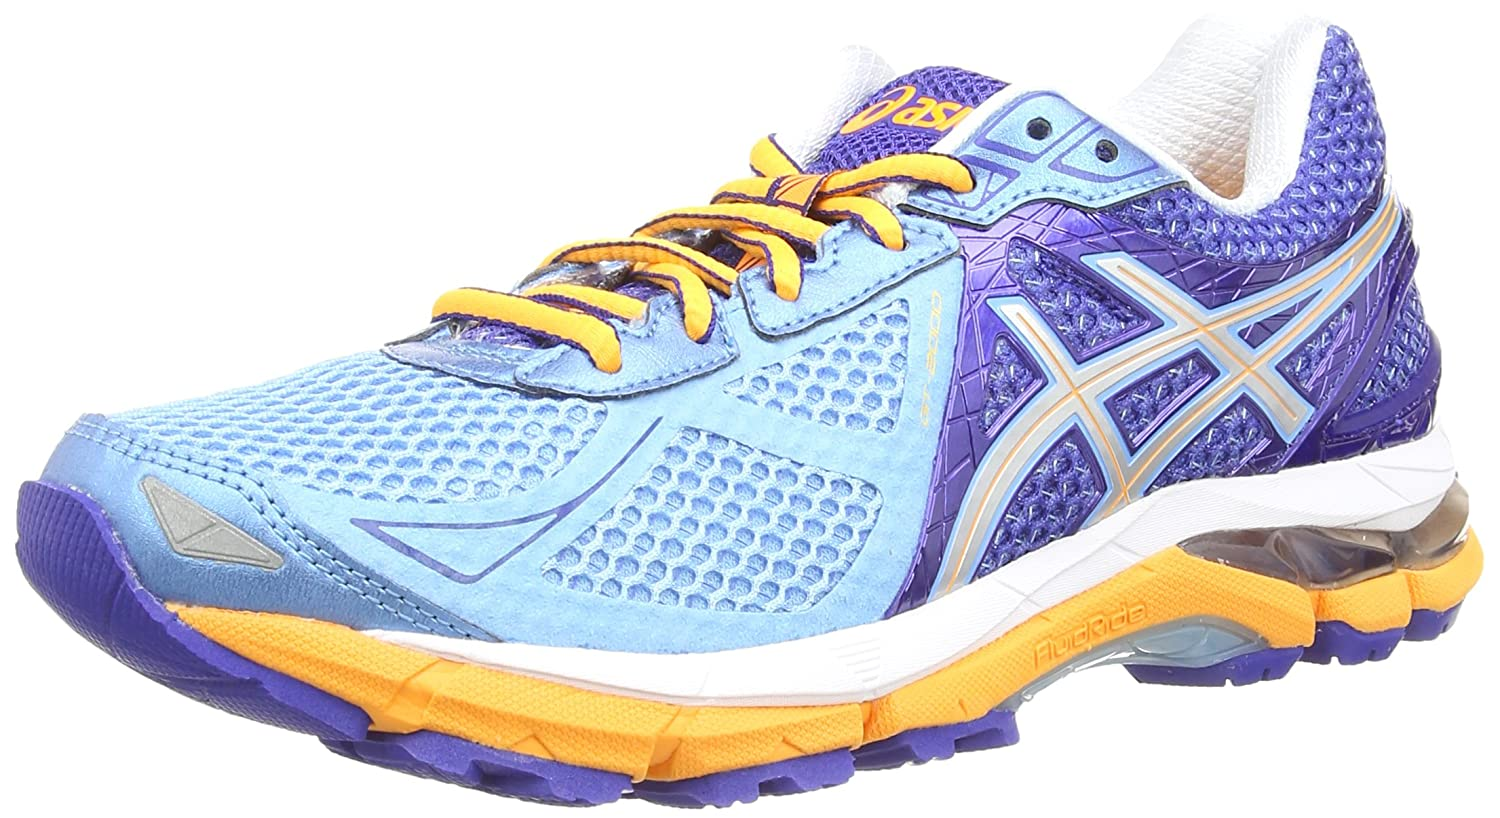 asics shoes office pair of thieves targeting 657045